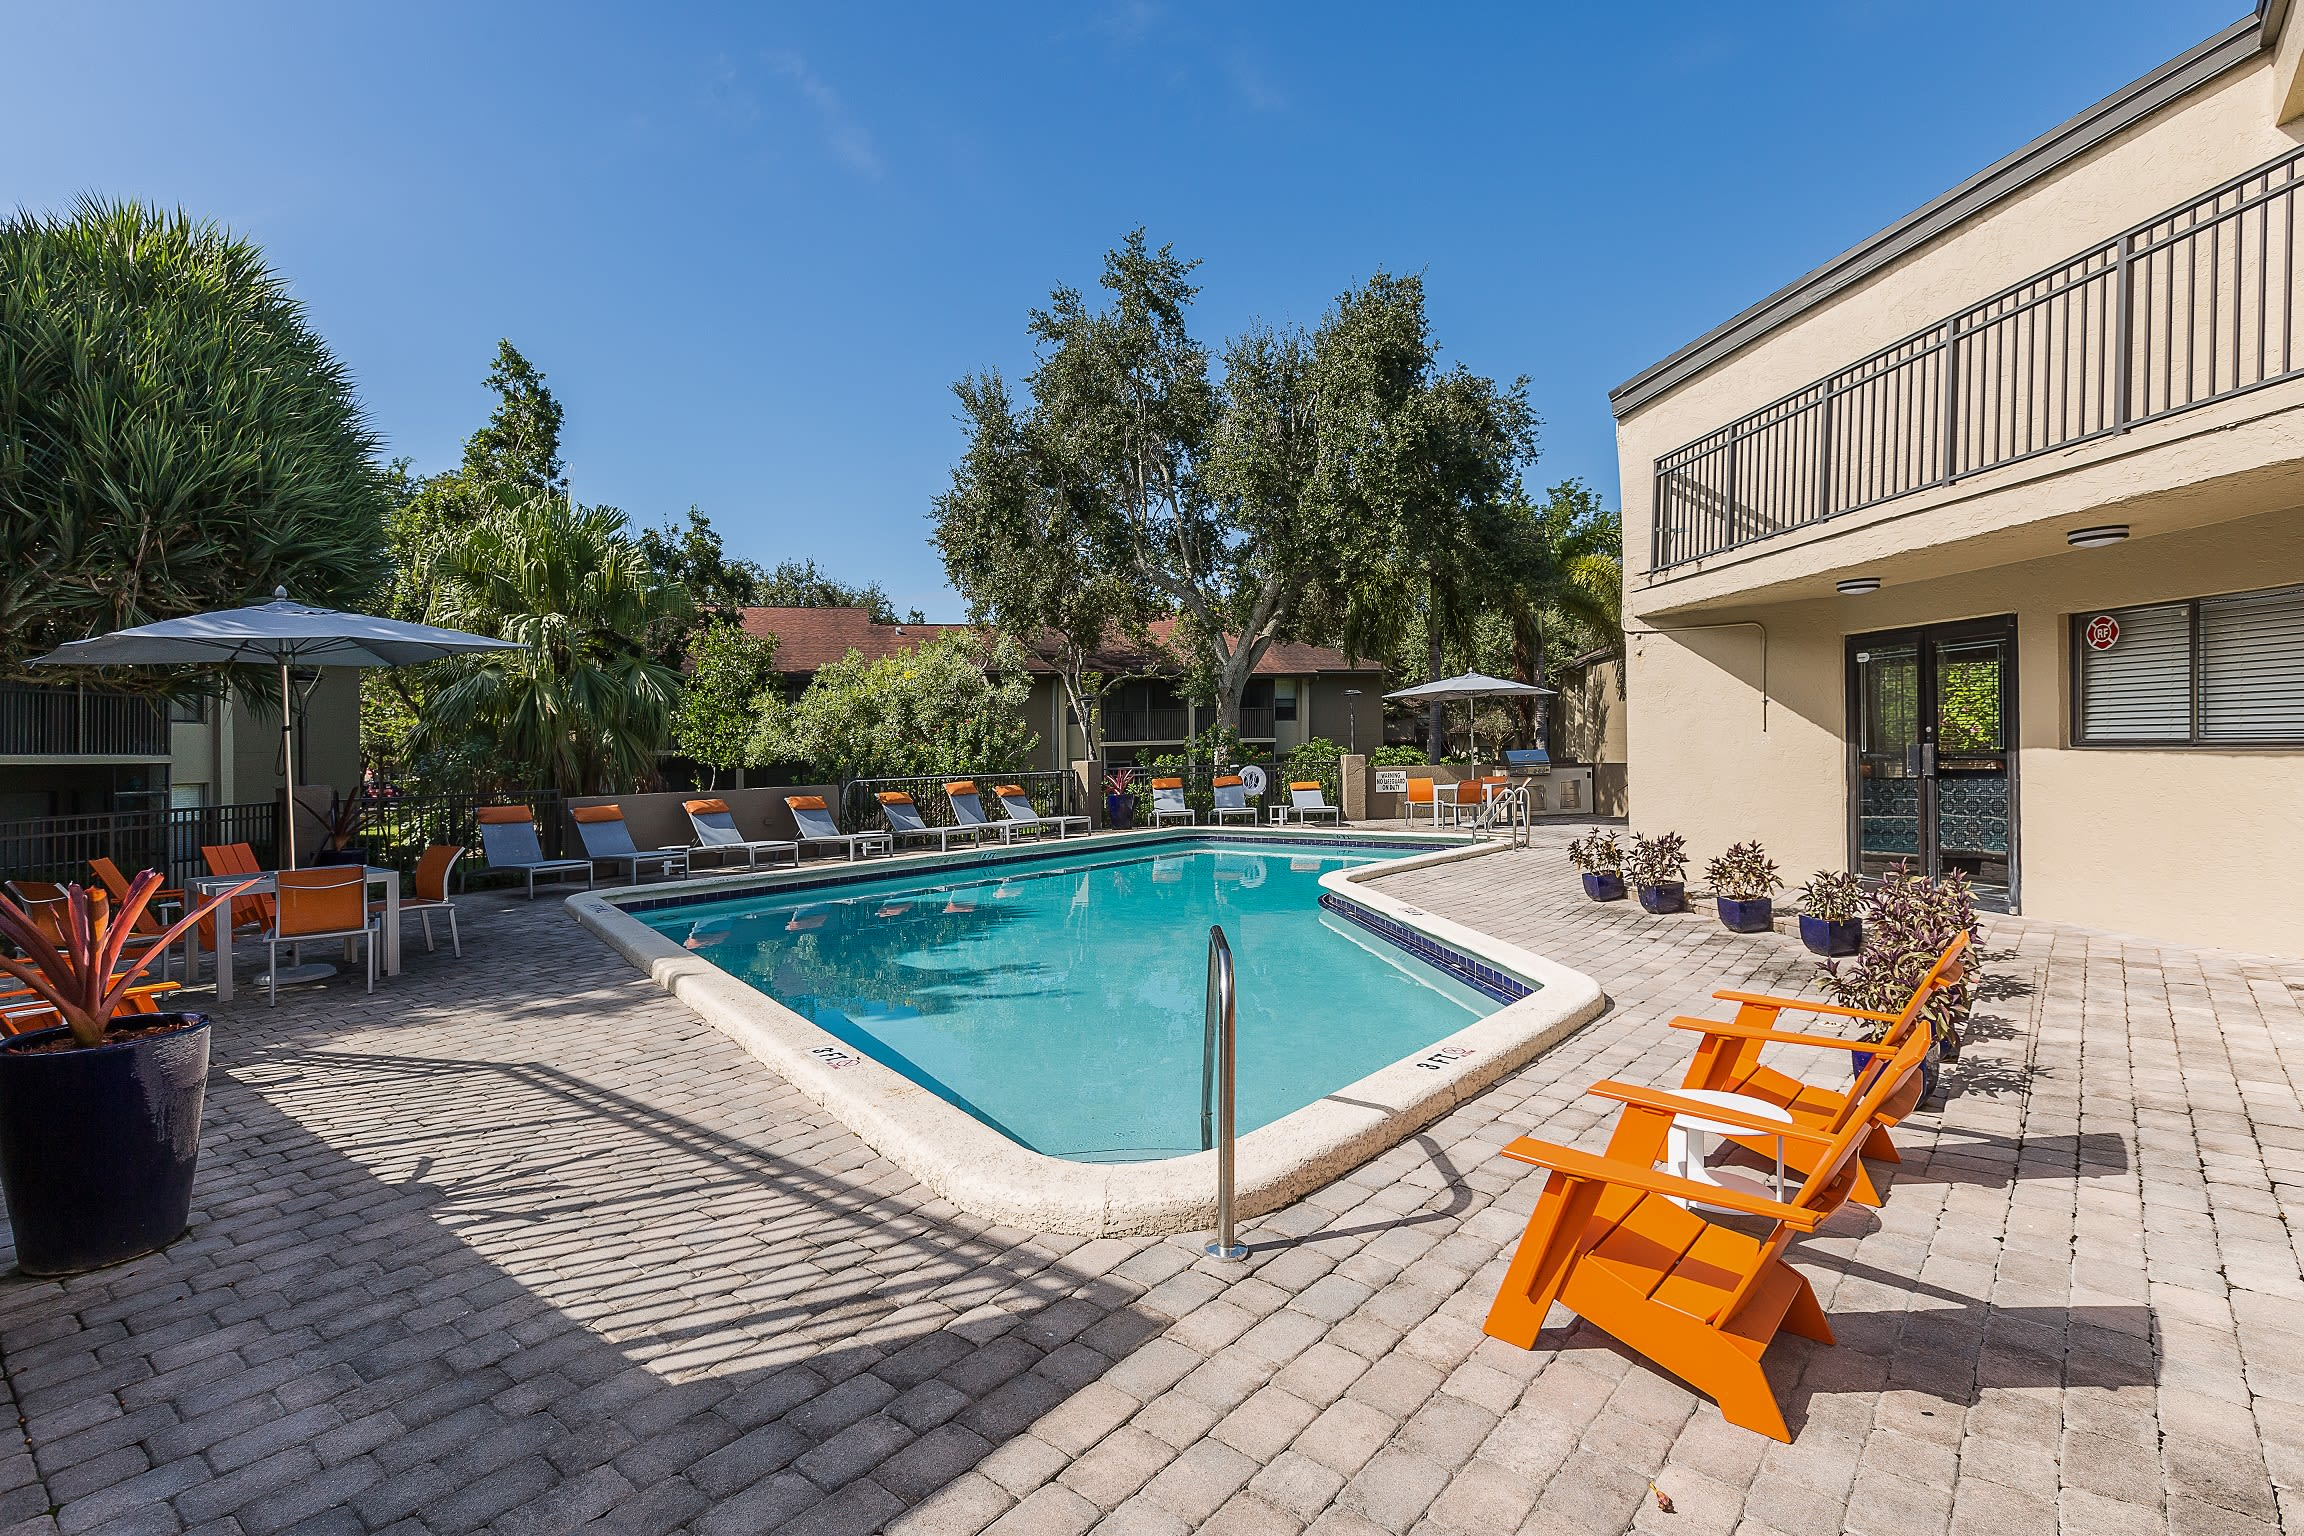 Swimming pool at Siena Apartments in Plantation, Florida